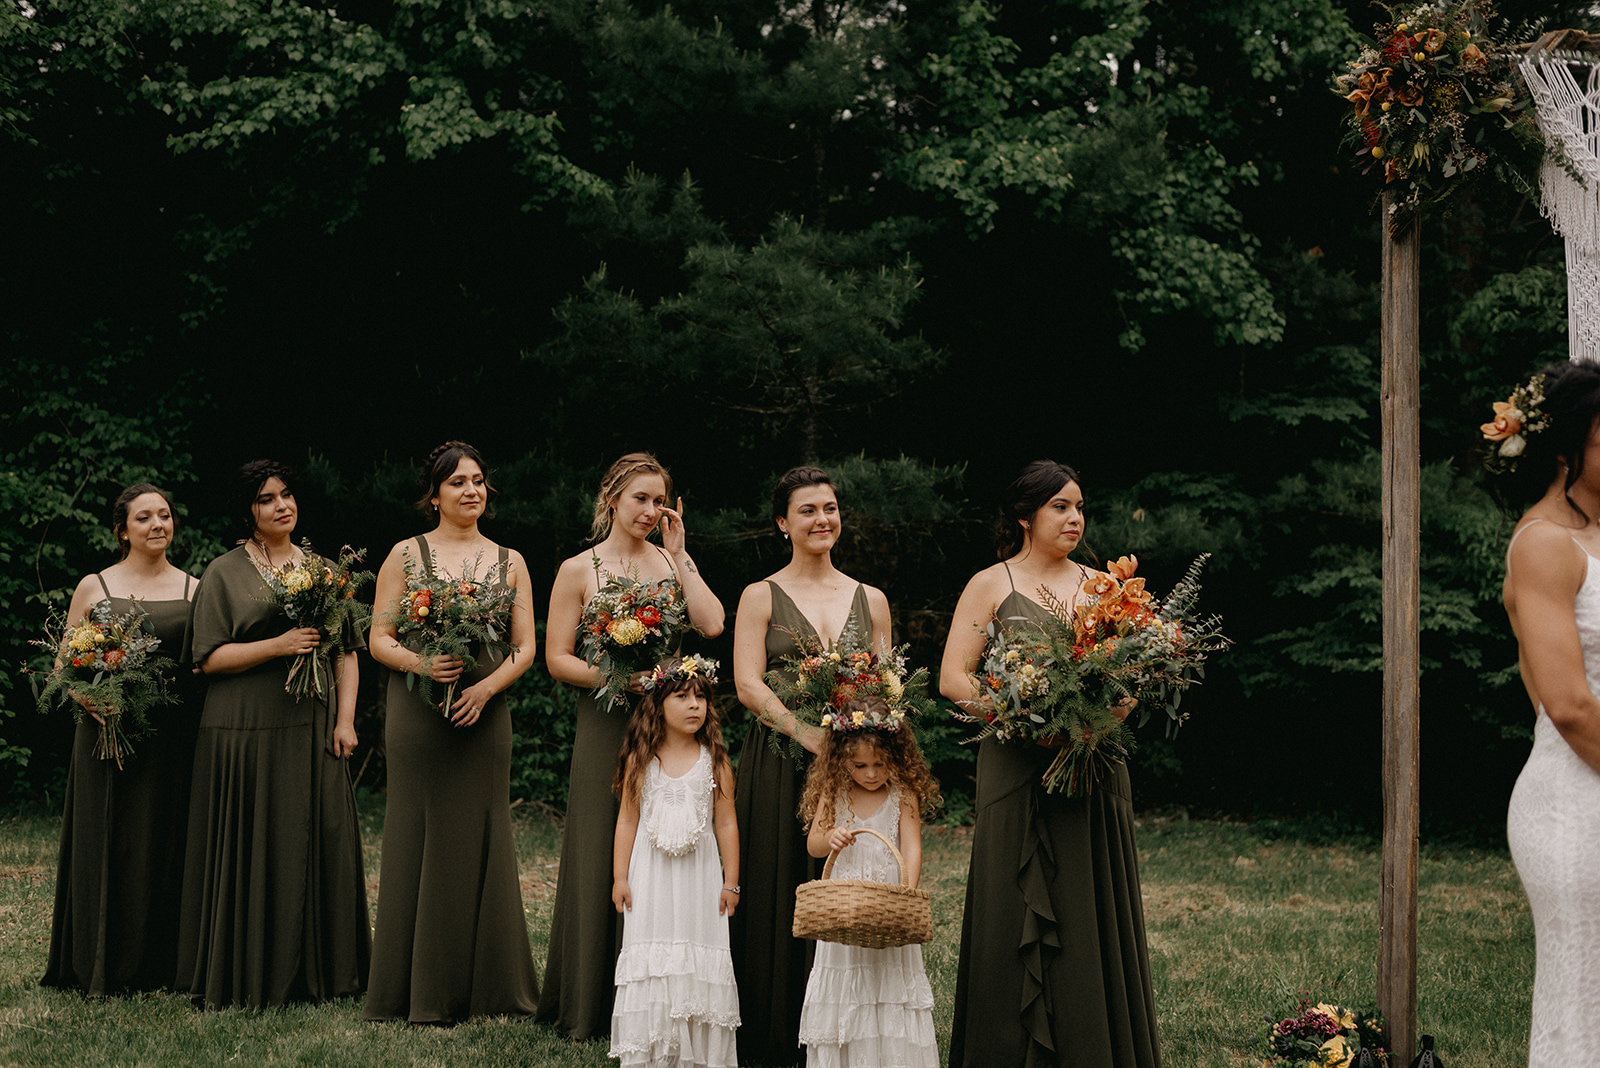 Bridesmaids in forest green dresses - Pearl Weddings & Events